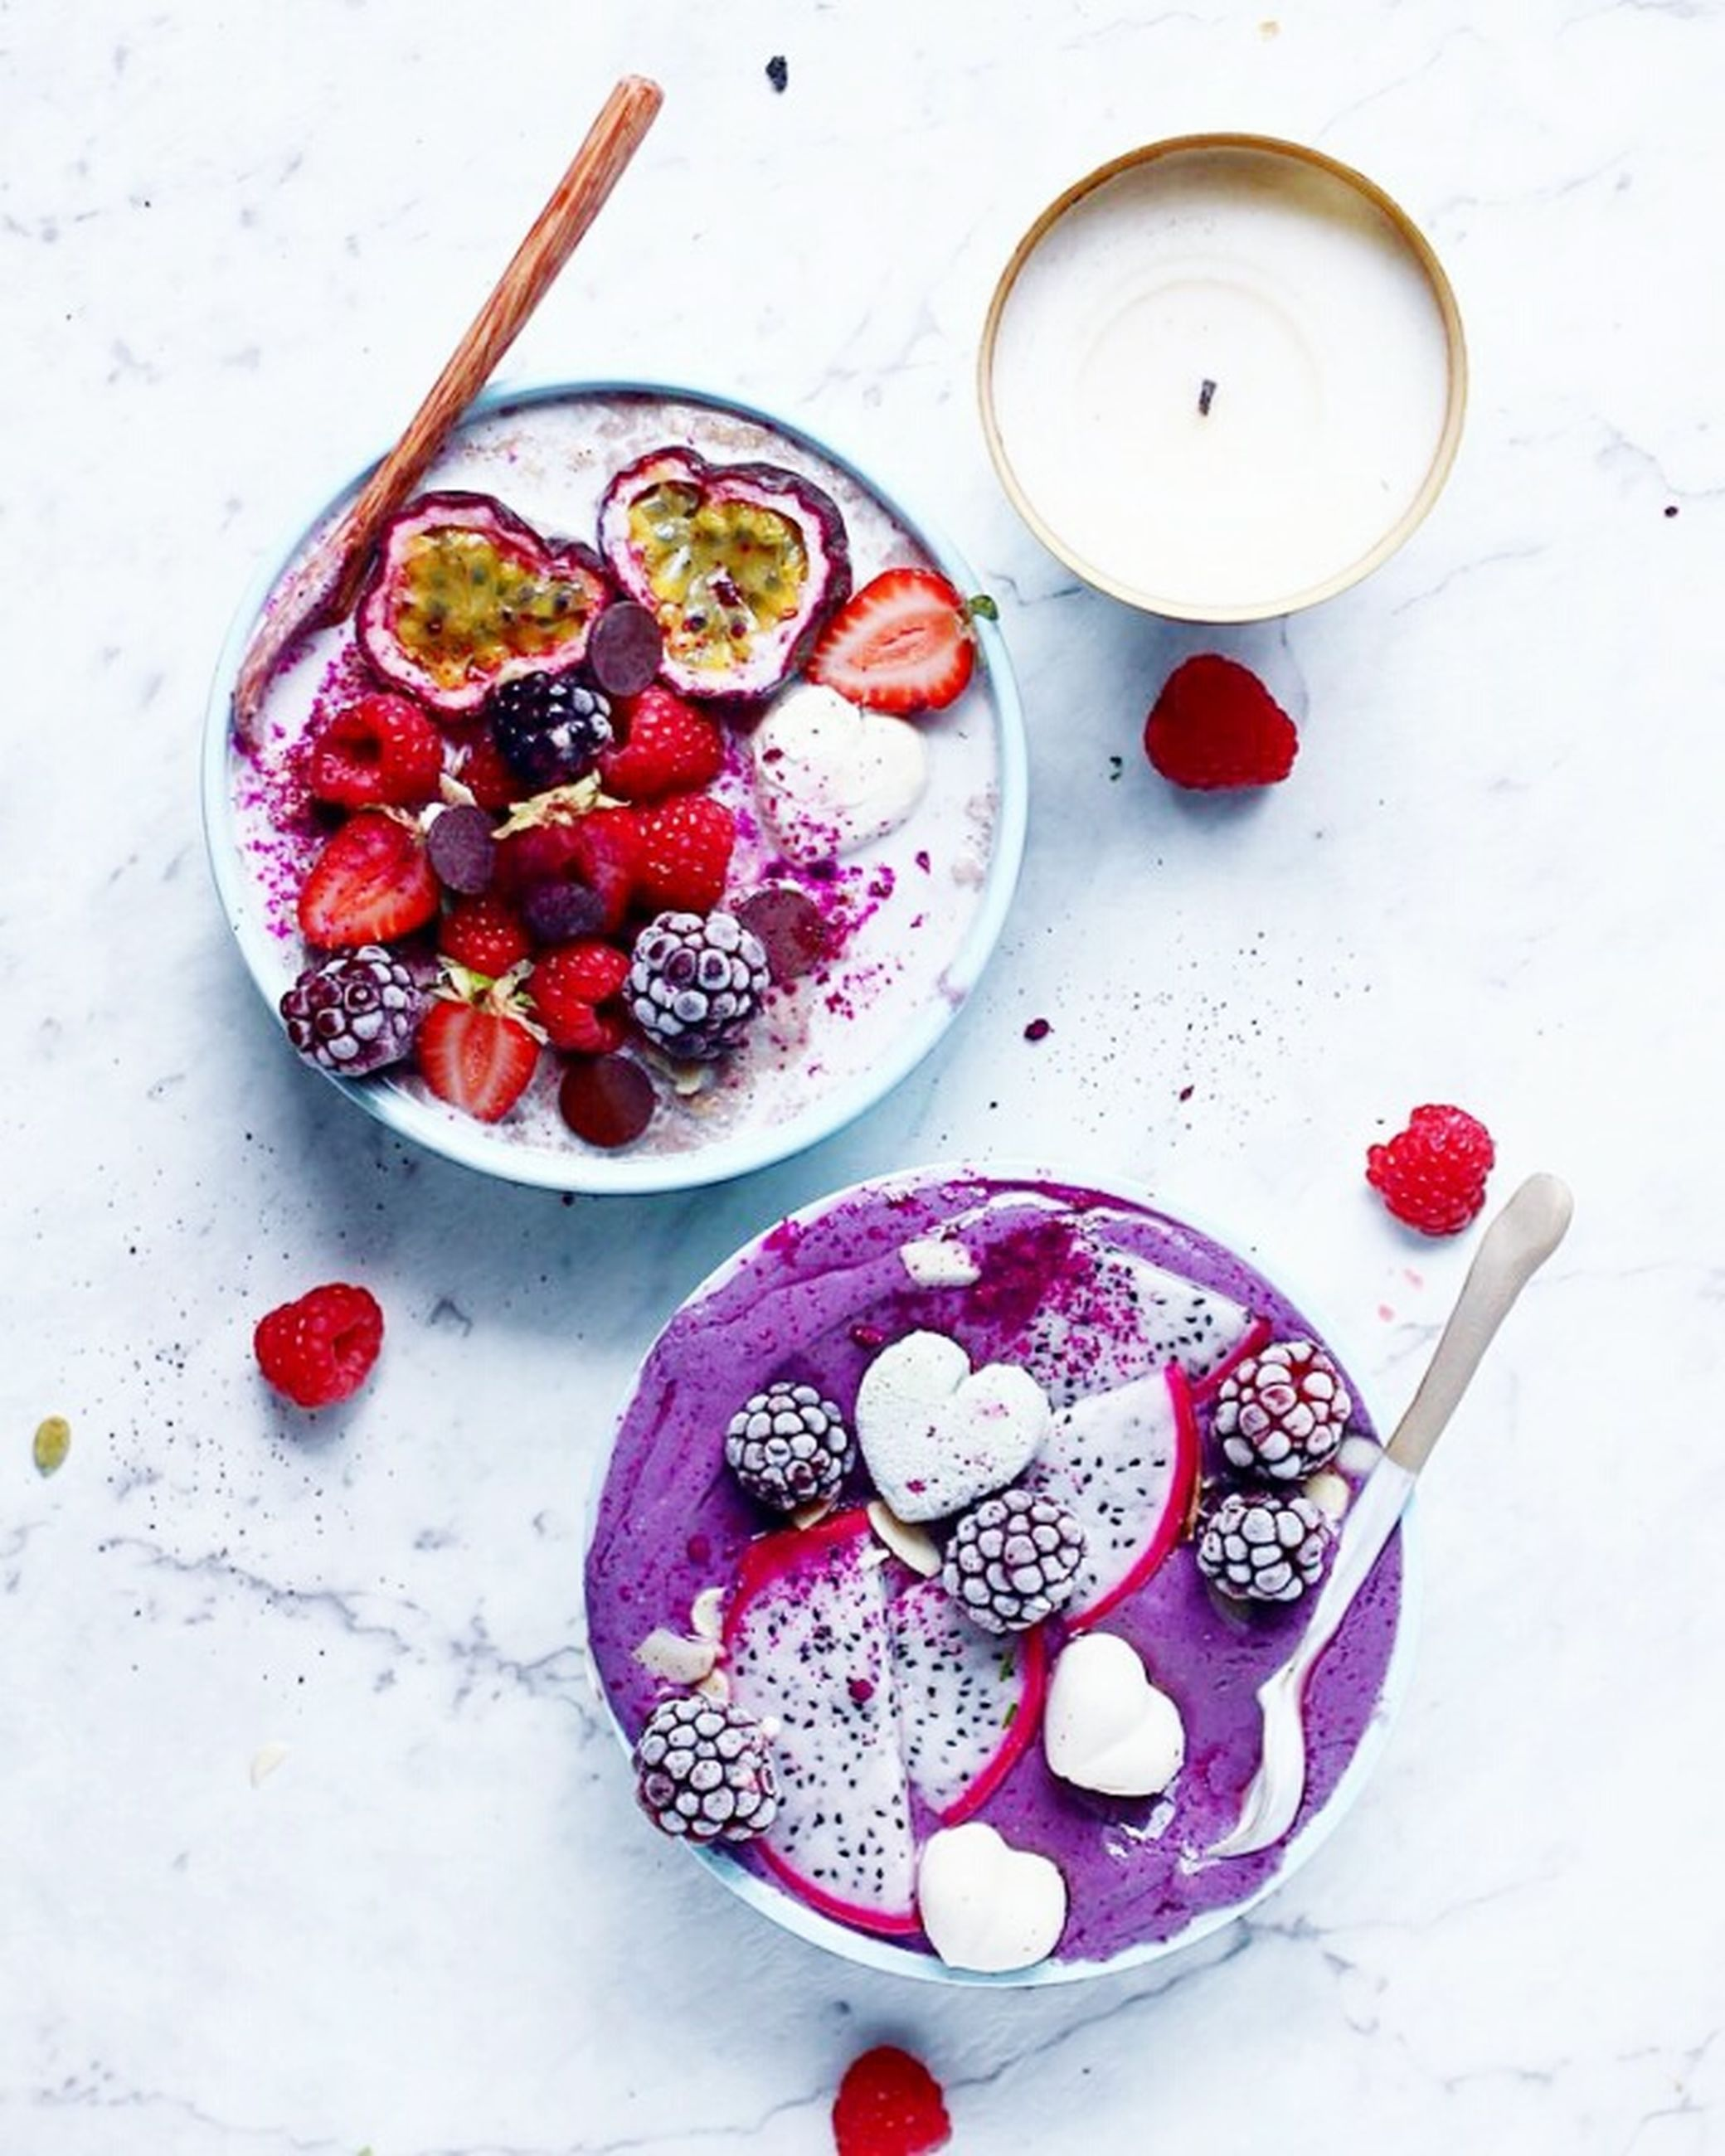 fruit, food and drink, chia seed, high angle view, bowl, freshness, raspberry, healthy eating, smoothie, seed, pomegranate seed, blueberry, drink, yogurt, garnish, pitaya, studio shot, indoors, no people, pomegranate, drinking glass, sweet food, ready-to-eat, close-up